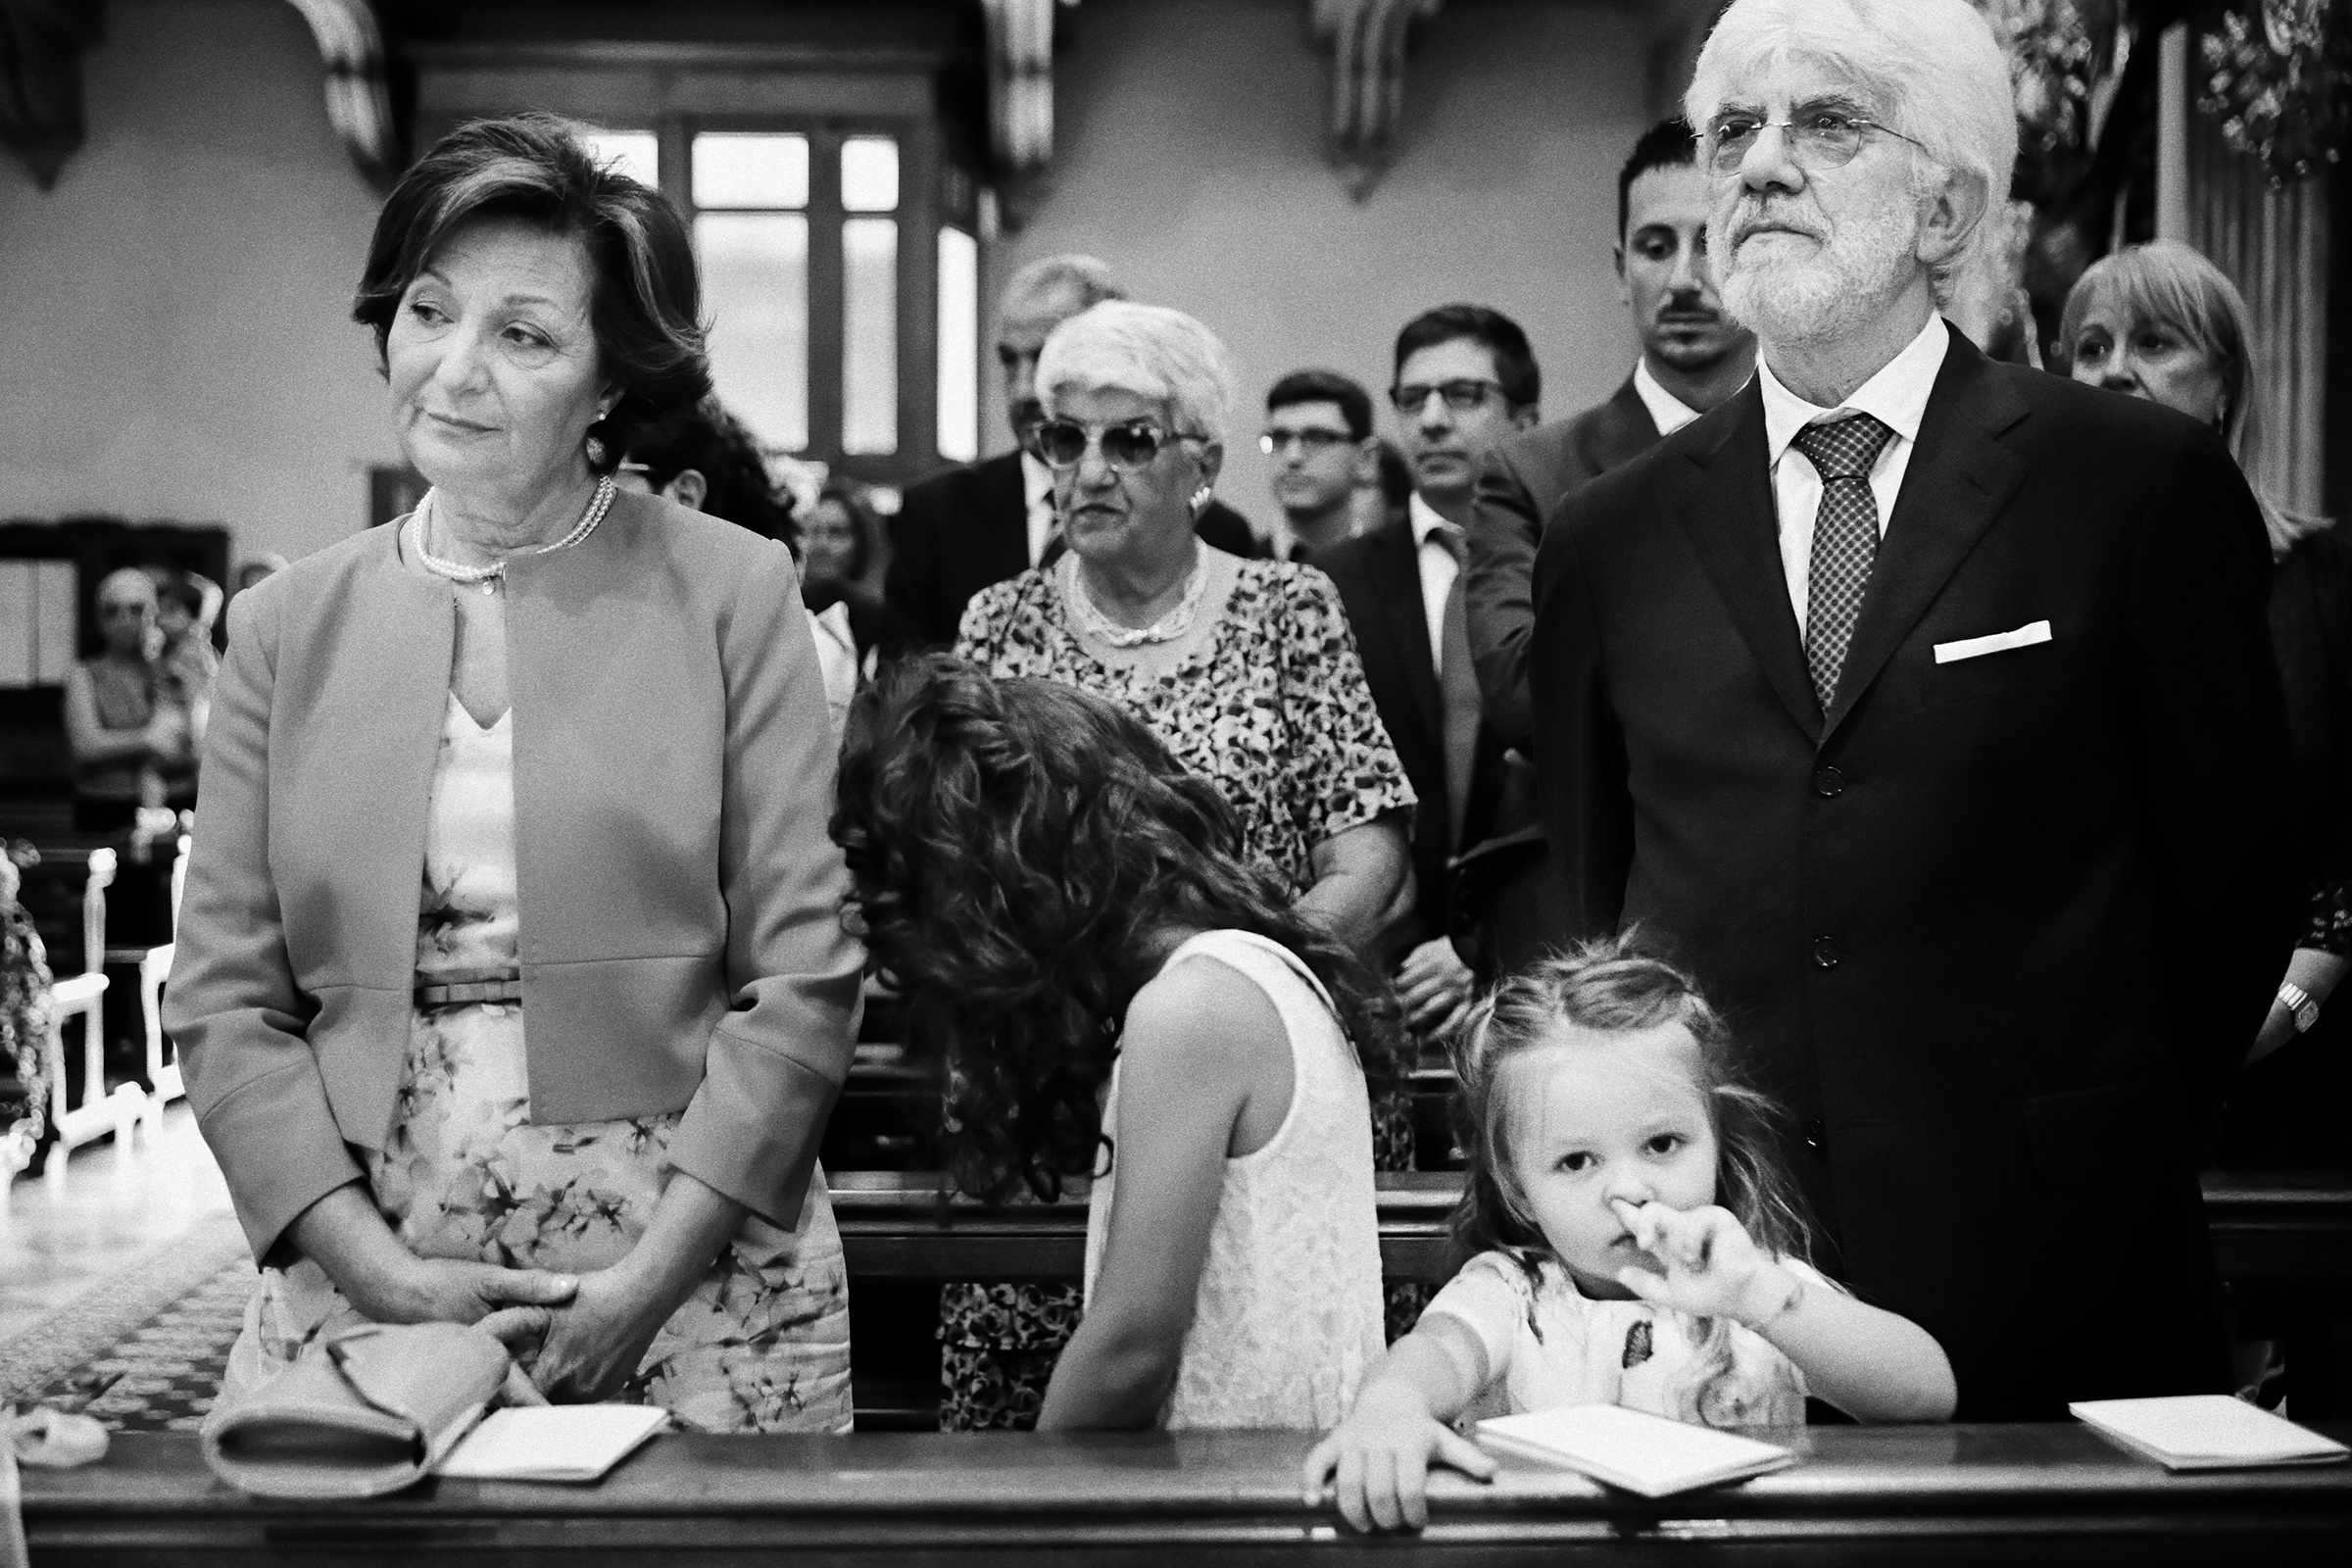 Solemn guests and distracted kids - photo by Andrea Bagnasco Fotografie